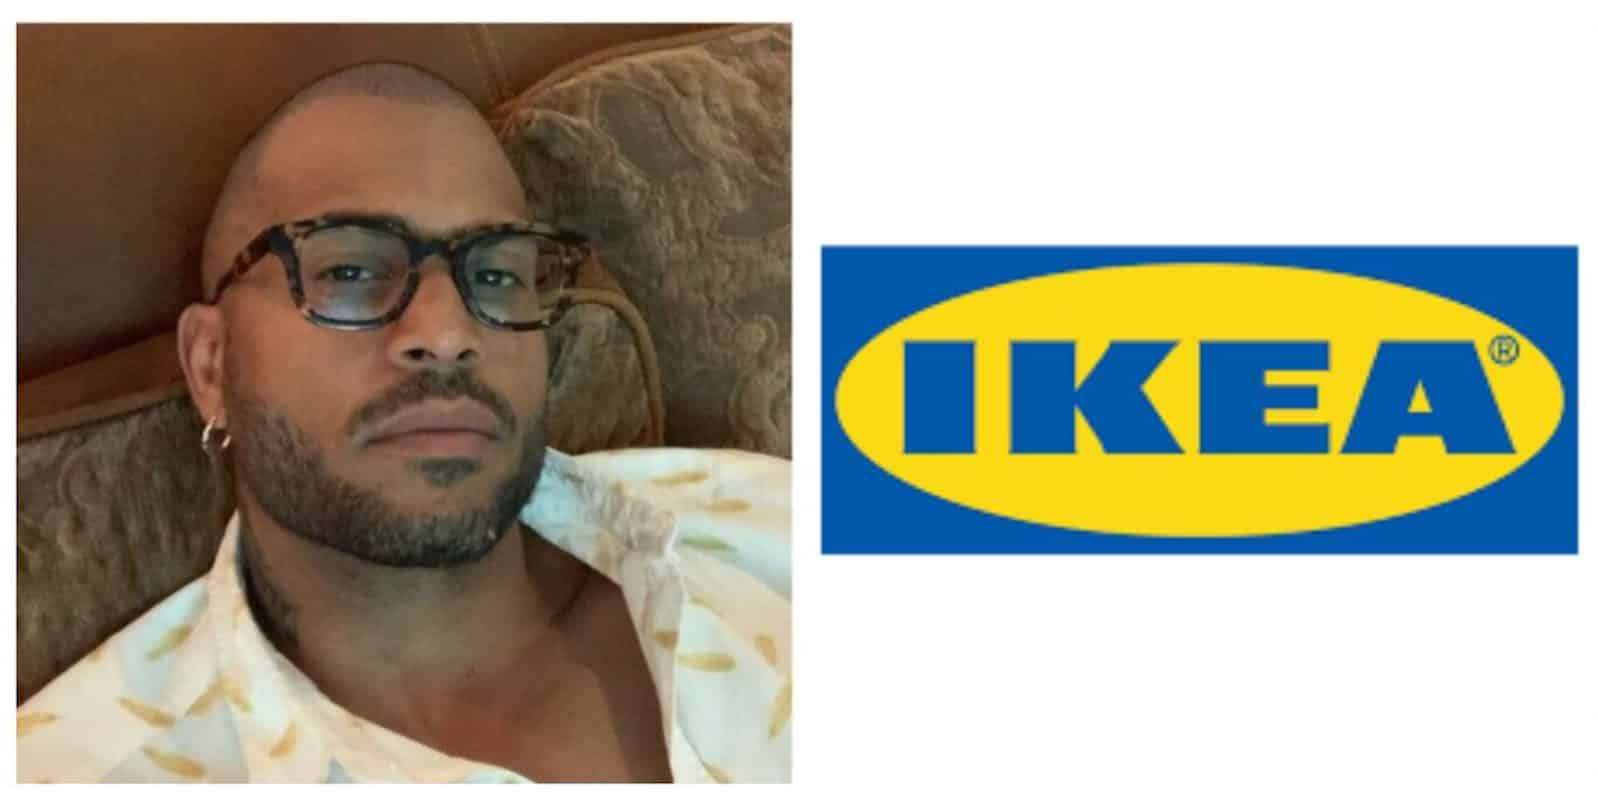 Guillaume-Lalung-Ikea